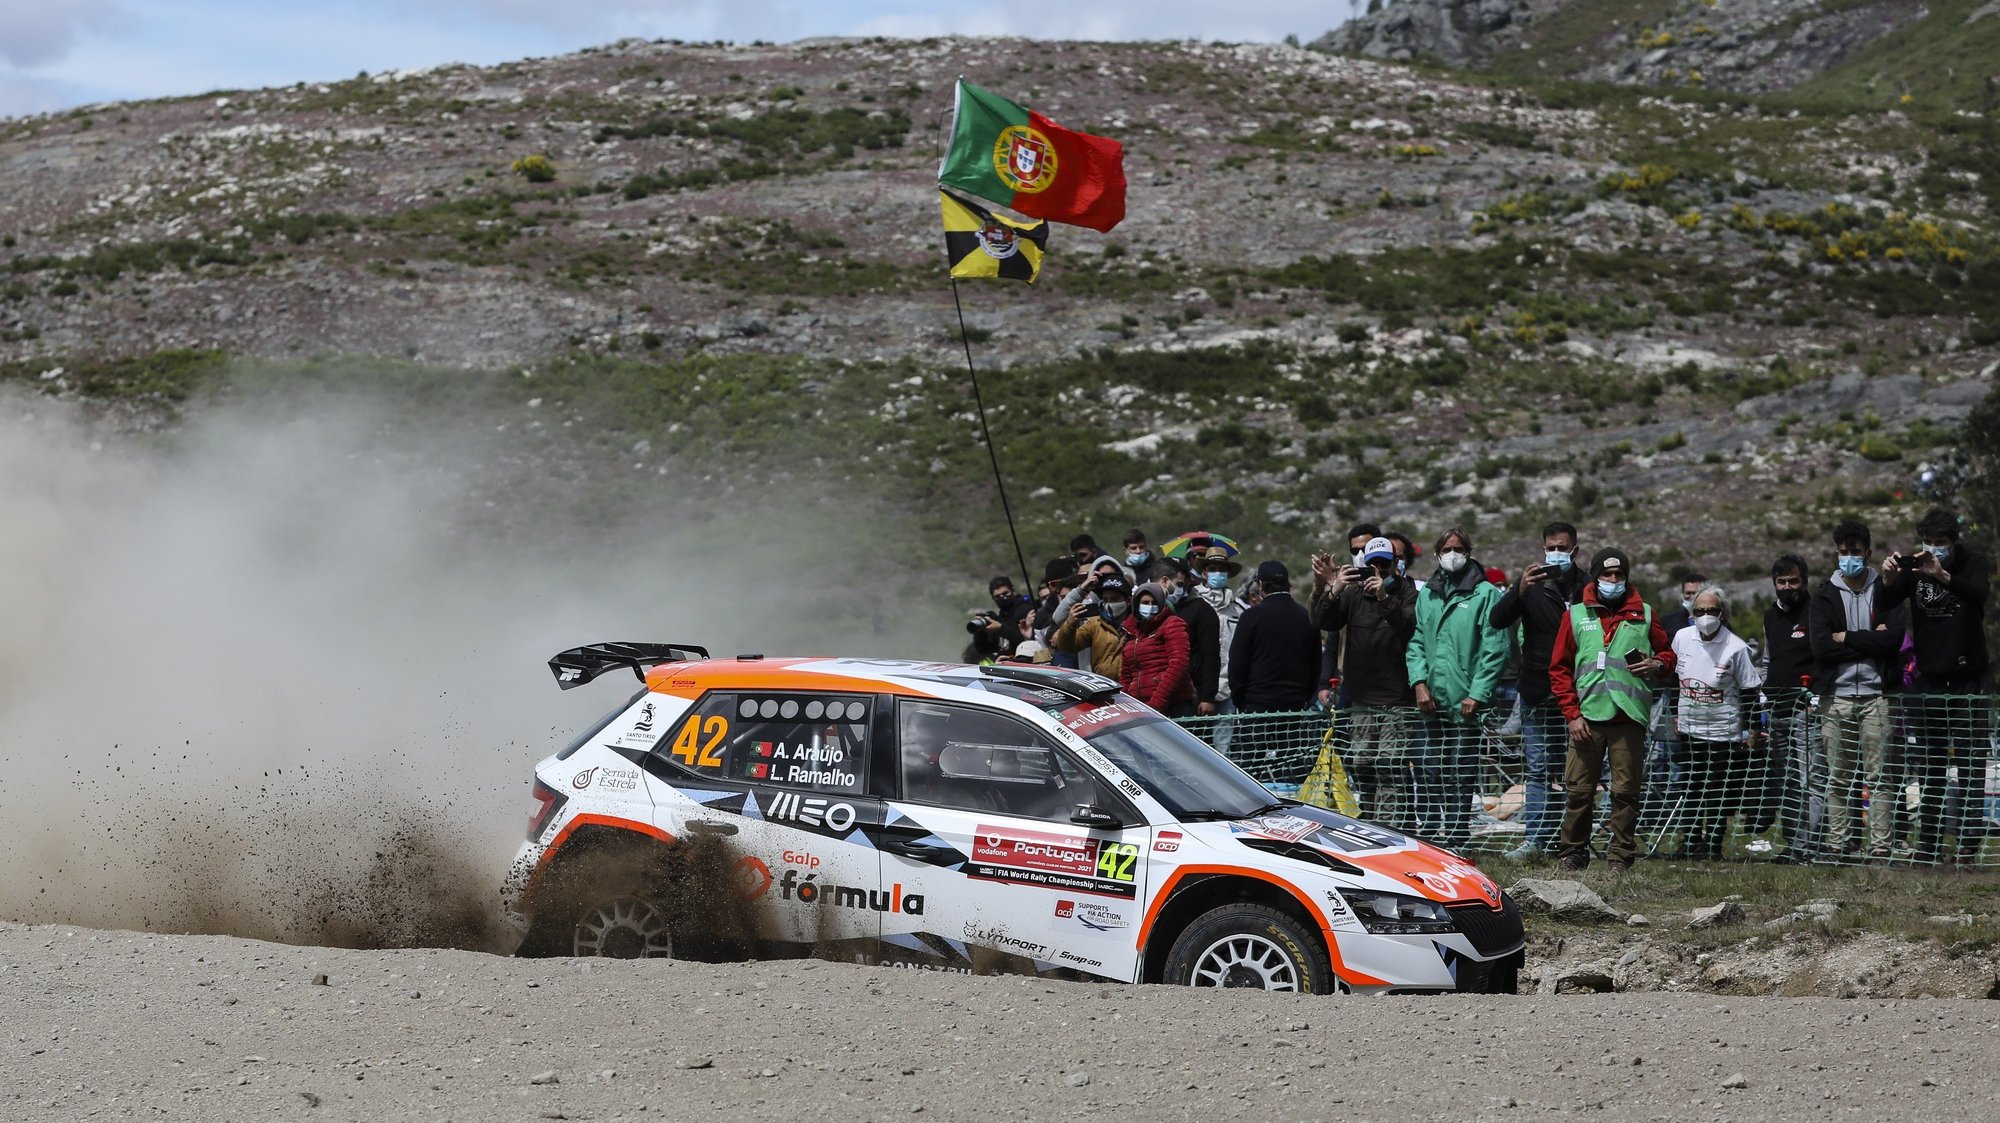 Portuguese Armindo Araujo drives his Skoda Fabia Evo WRC3 during the second day of the Rally Portugal as part of the World Rally Championship (WRC), in Vieira do Minho, Portugal, 22 May 2021. JOSE COELHO/LUSA